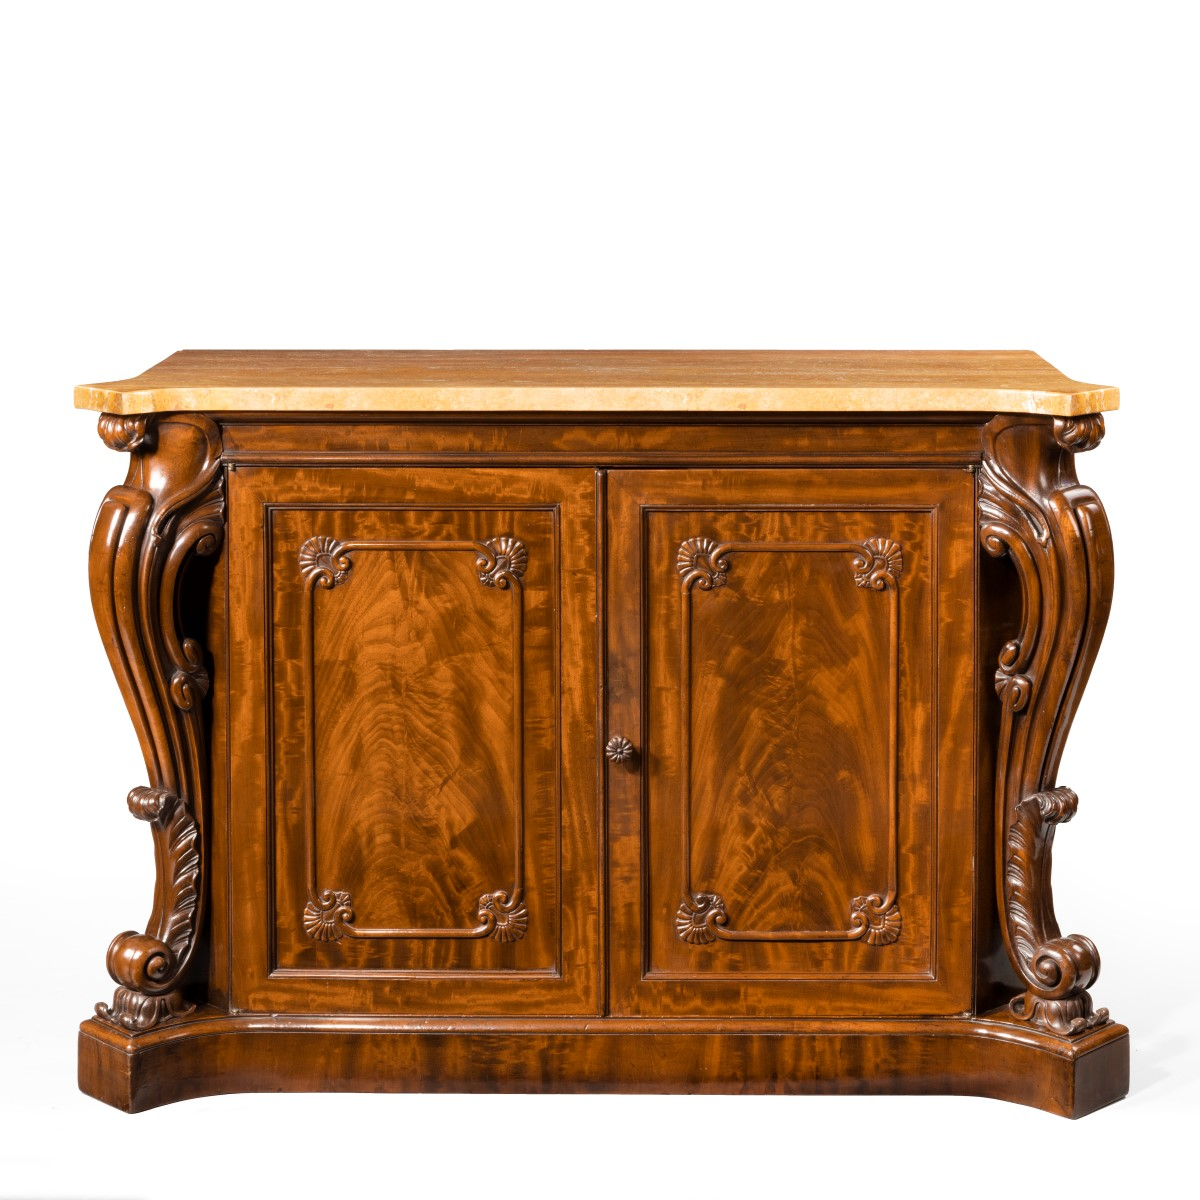 An early Victorian two-door mahogany side cabinet, attributed to Gillow